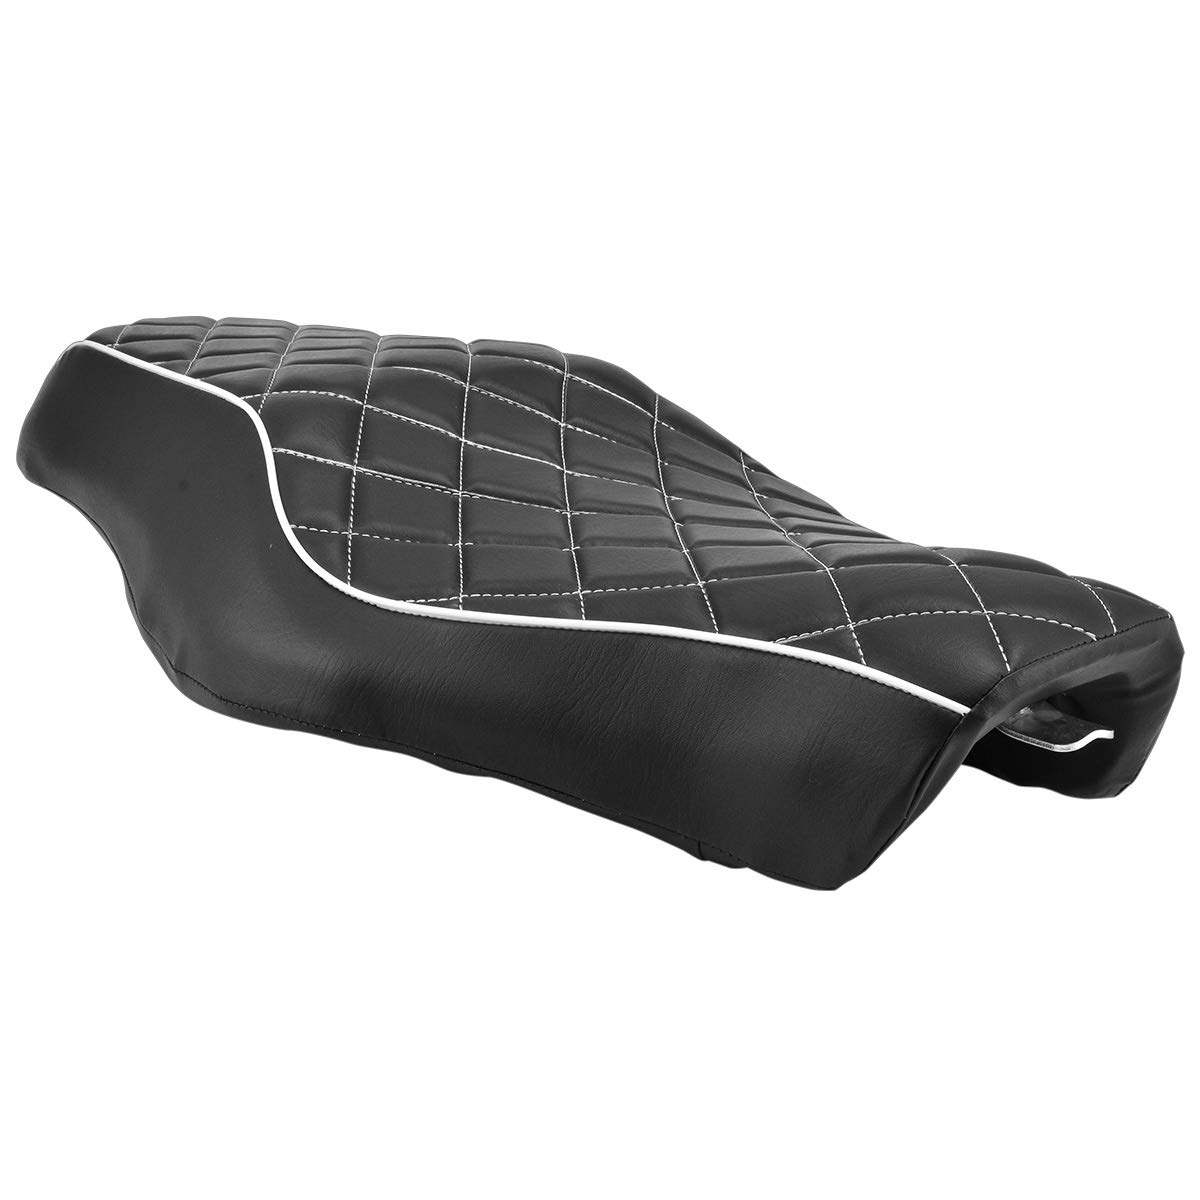 NATGIC Harley Motorcycle Seat Black Leather Stripes Surface Cushion Seat Rear Passenger Pad Seat for Harley Sportster XL 883 883XL 883C 883N 2005-2013